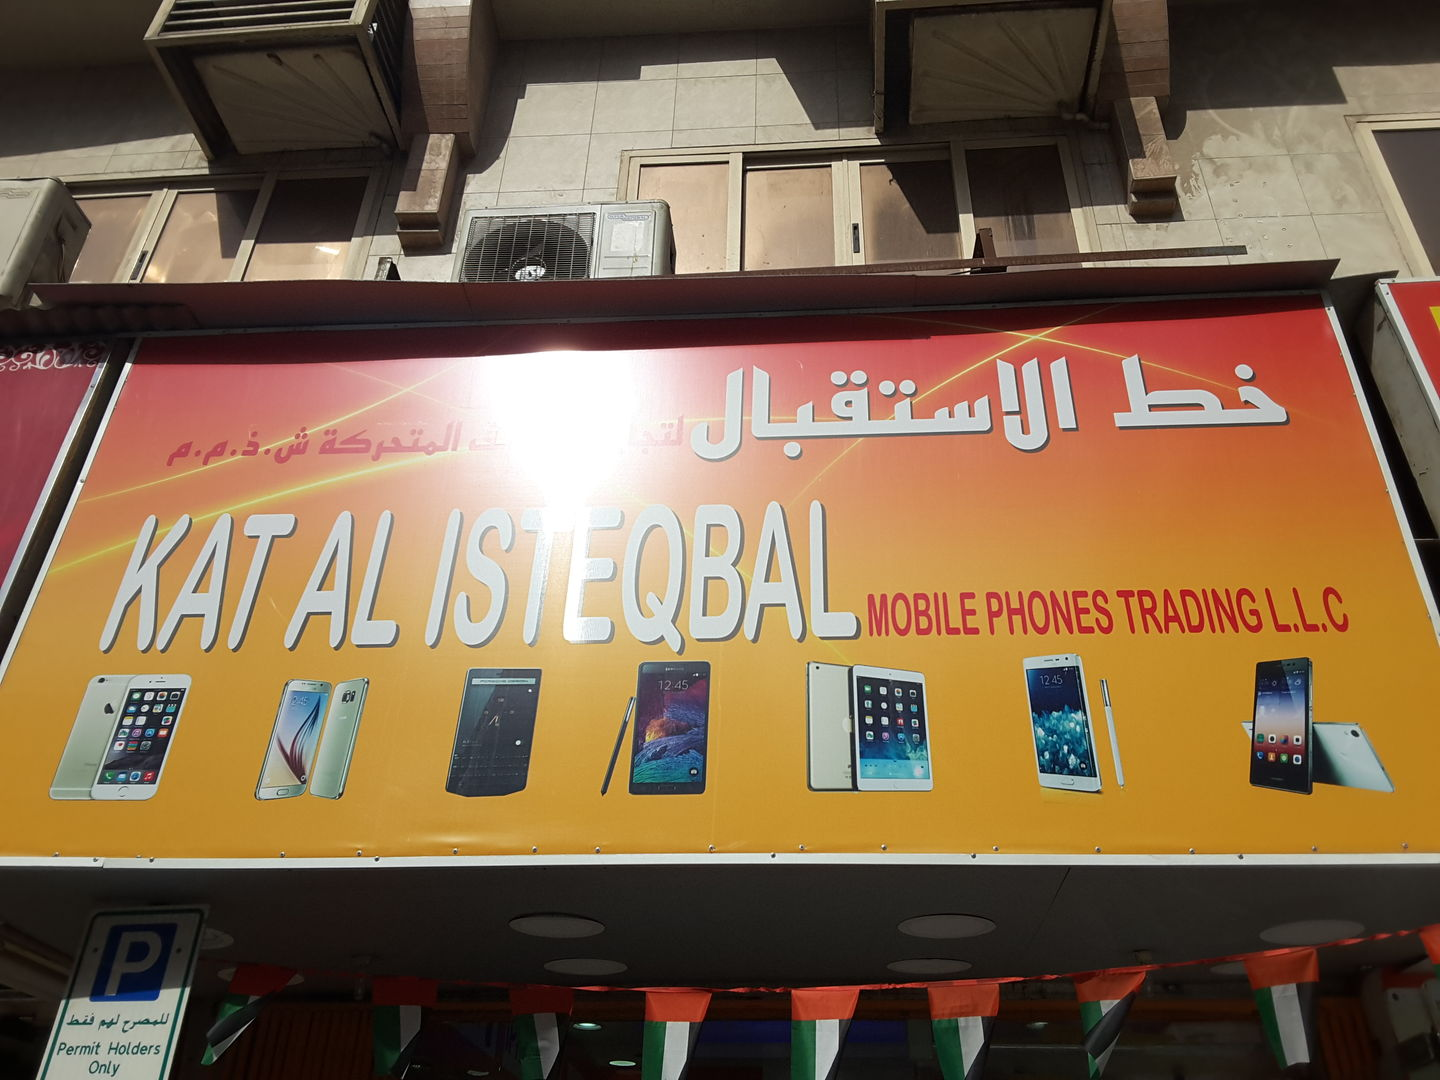 HiDubai-business-kat-al-isteqbal-mobile-phones-trading-b2b-services-distributors-wholesalers-ayal-nasir-dubai-2